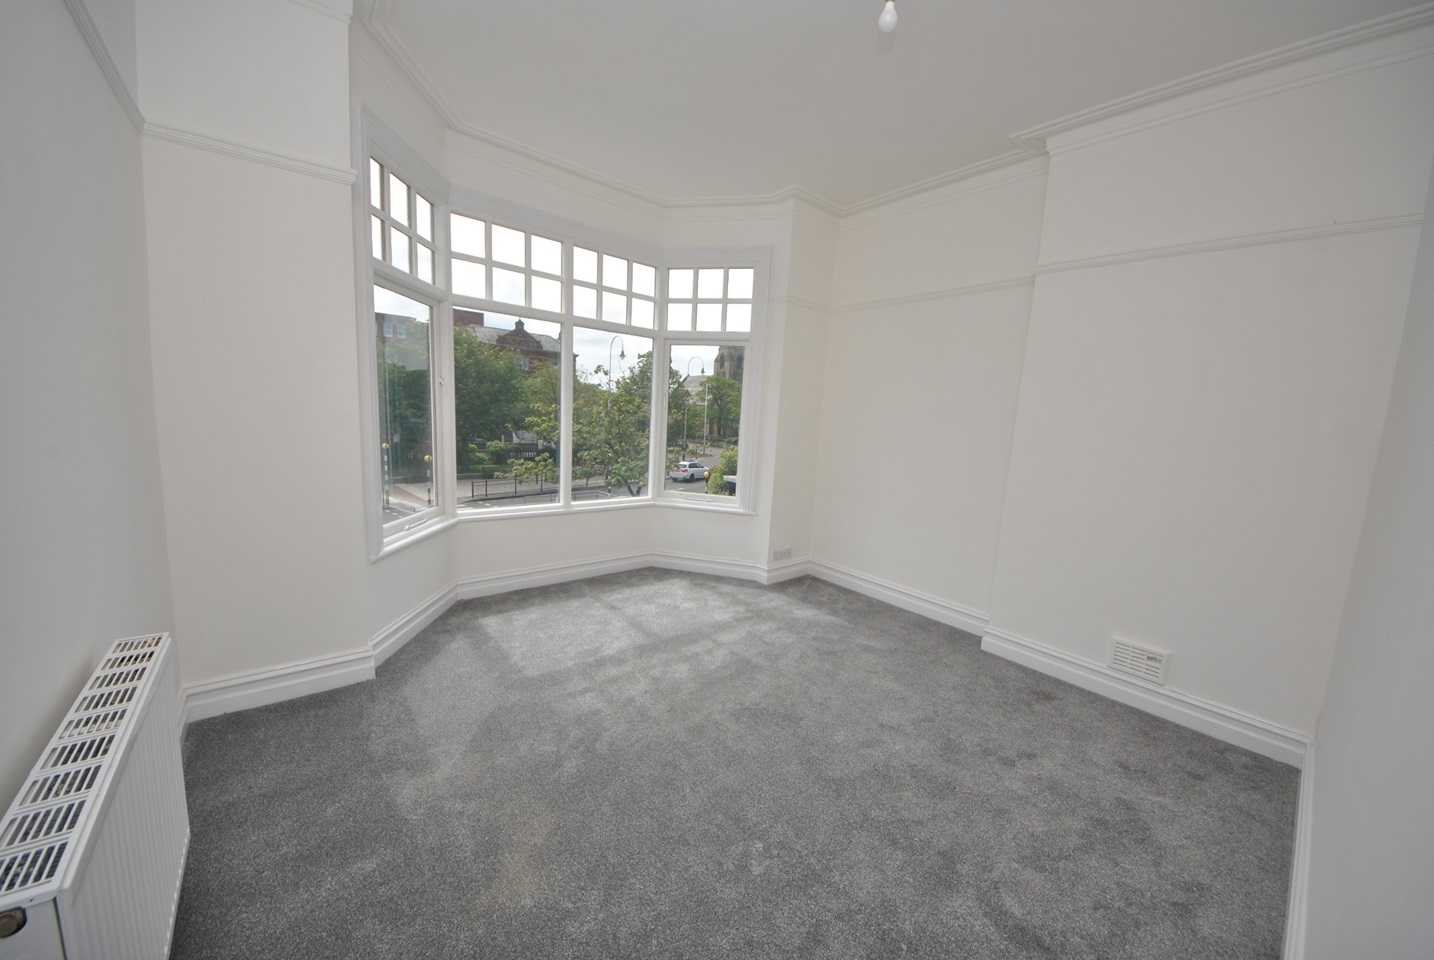 Southport - 2 Bed Flat, Lord Street, PR8 - To Rent Now for ...